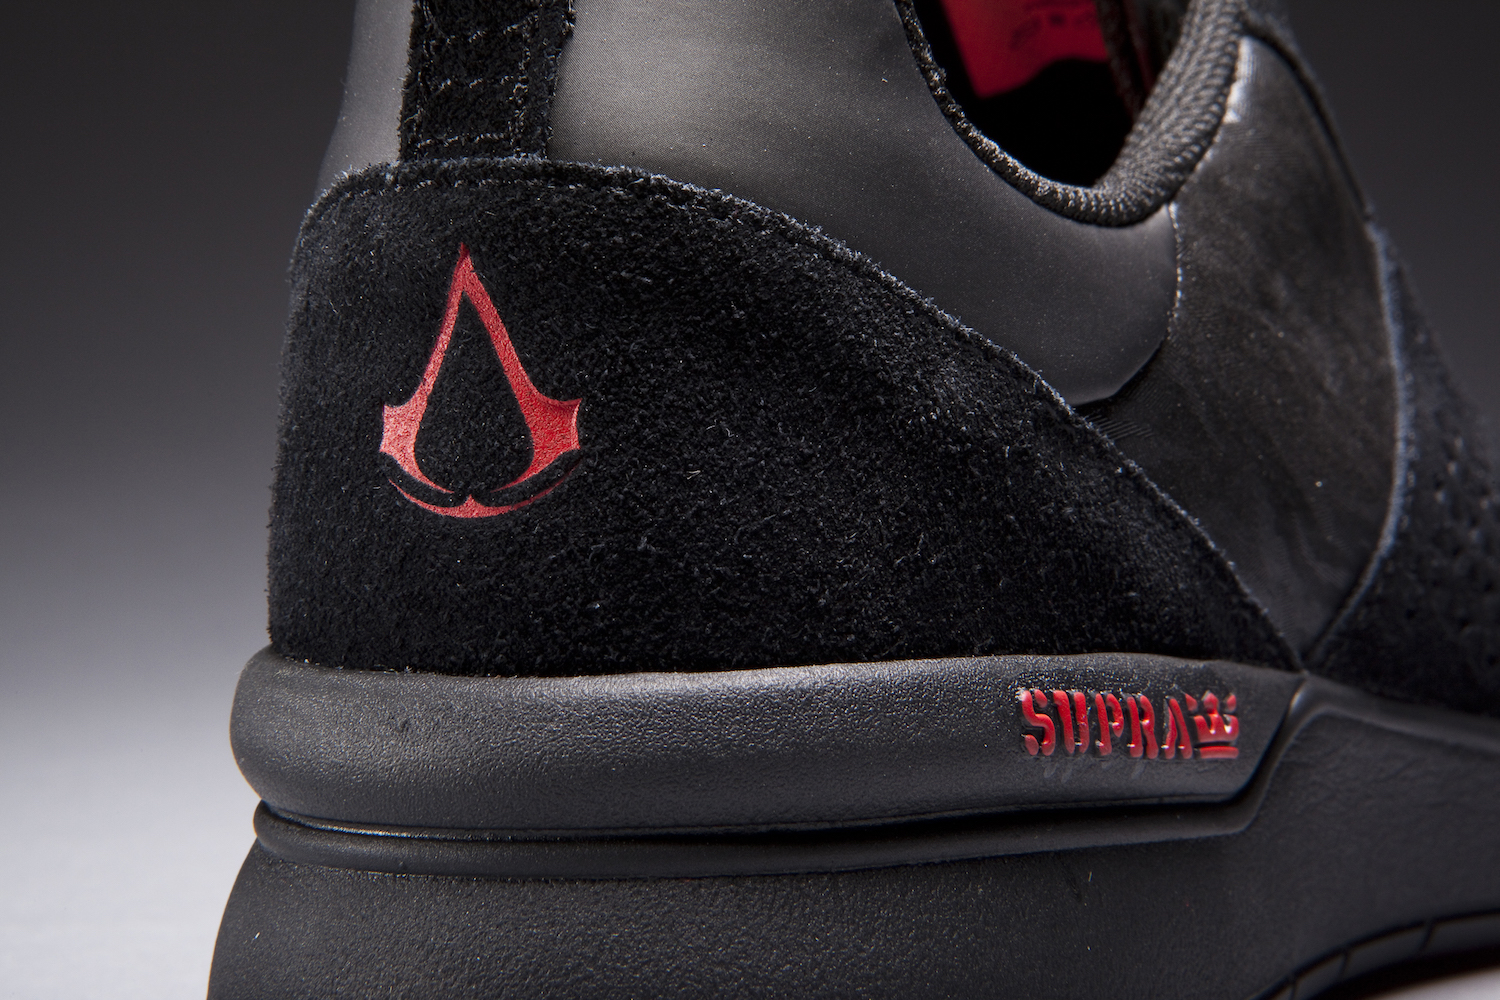 supra and assassins creed footwear collection 17